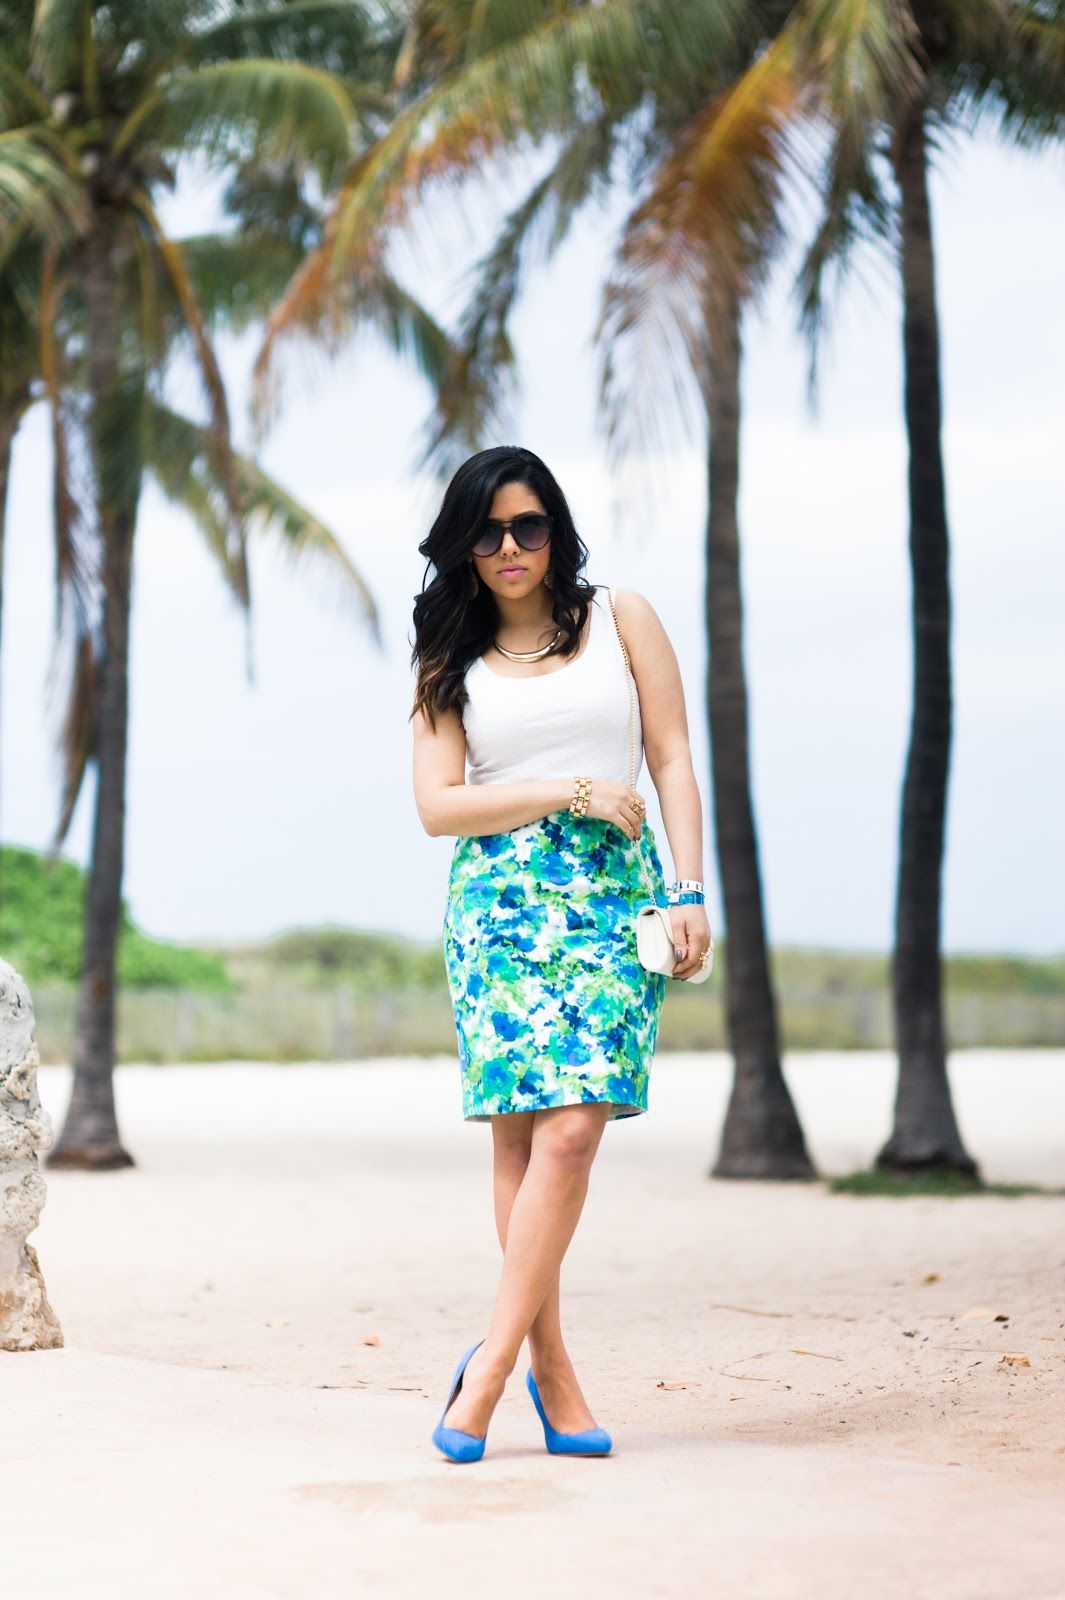 A Love Affair With Fashion : Under The Palm Trees